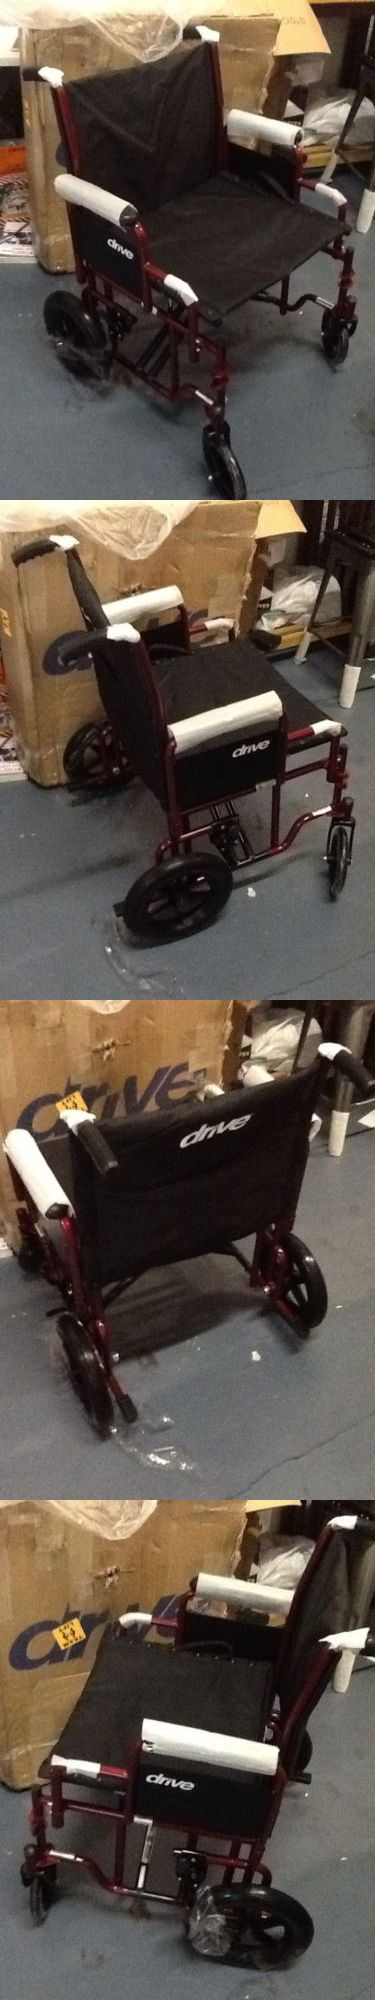 Wheelchairs: Drme-Btr22r-Drive Medical Bariatric Heavy Duty Transport Wheelchair With Swing- -> BUY IT NOW ONLY: $59.99 on eBay!